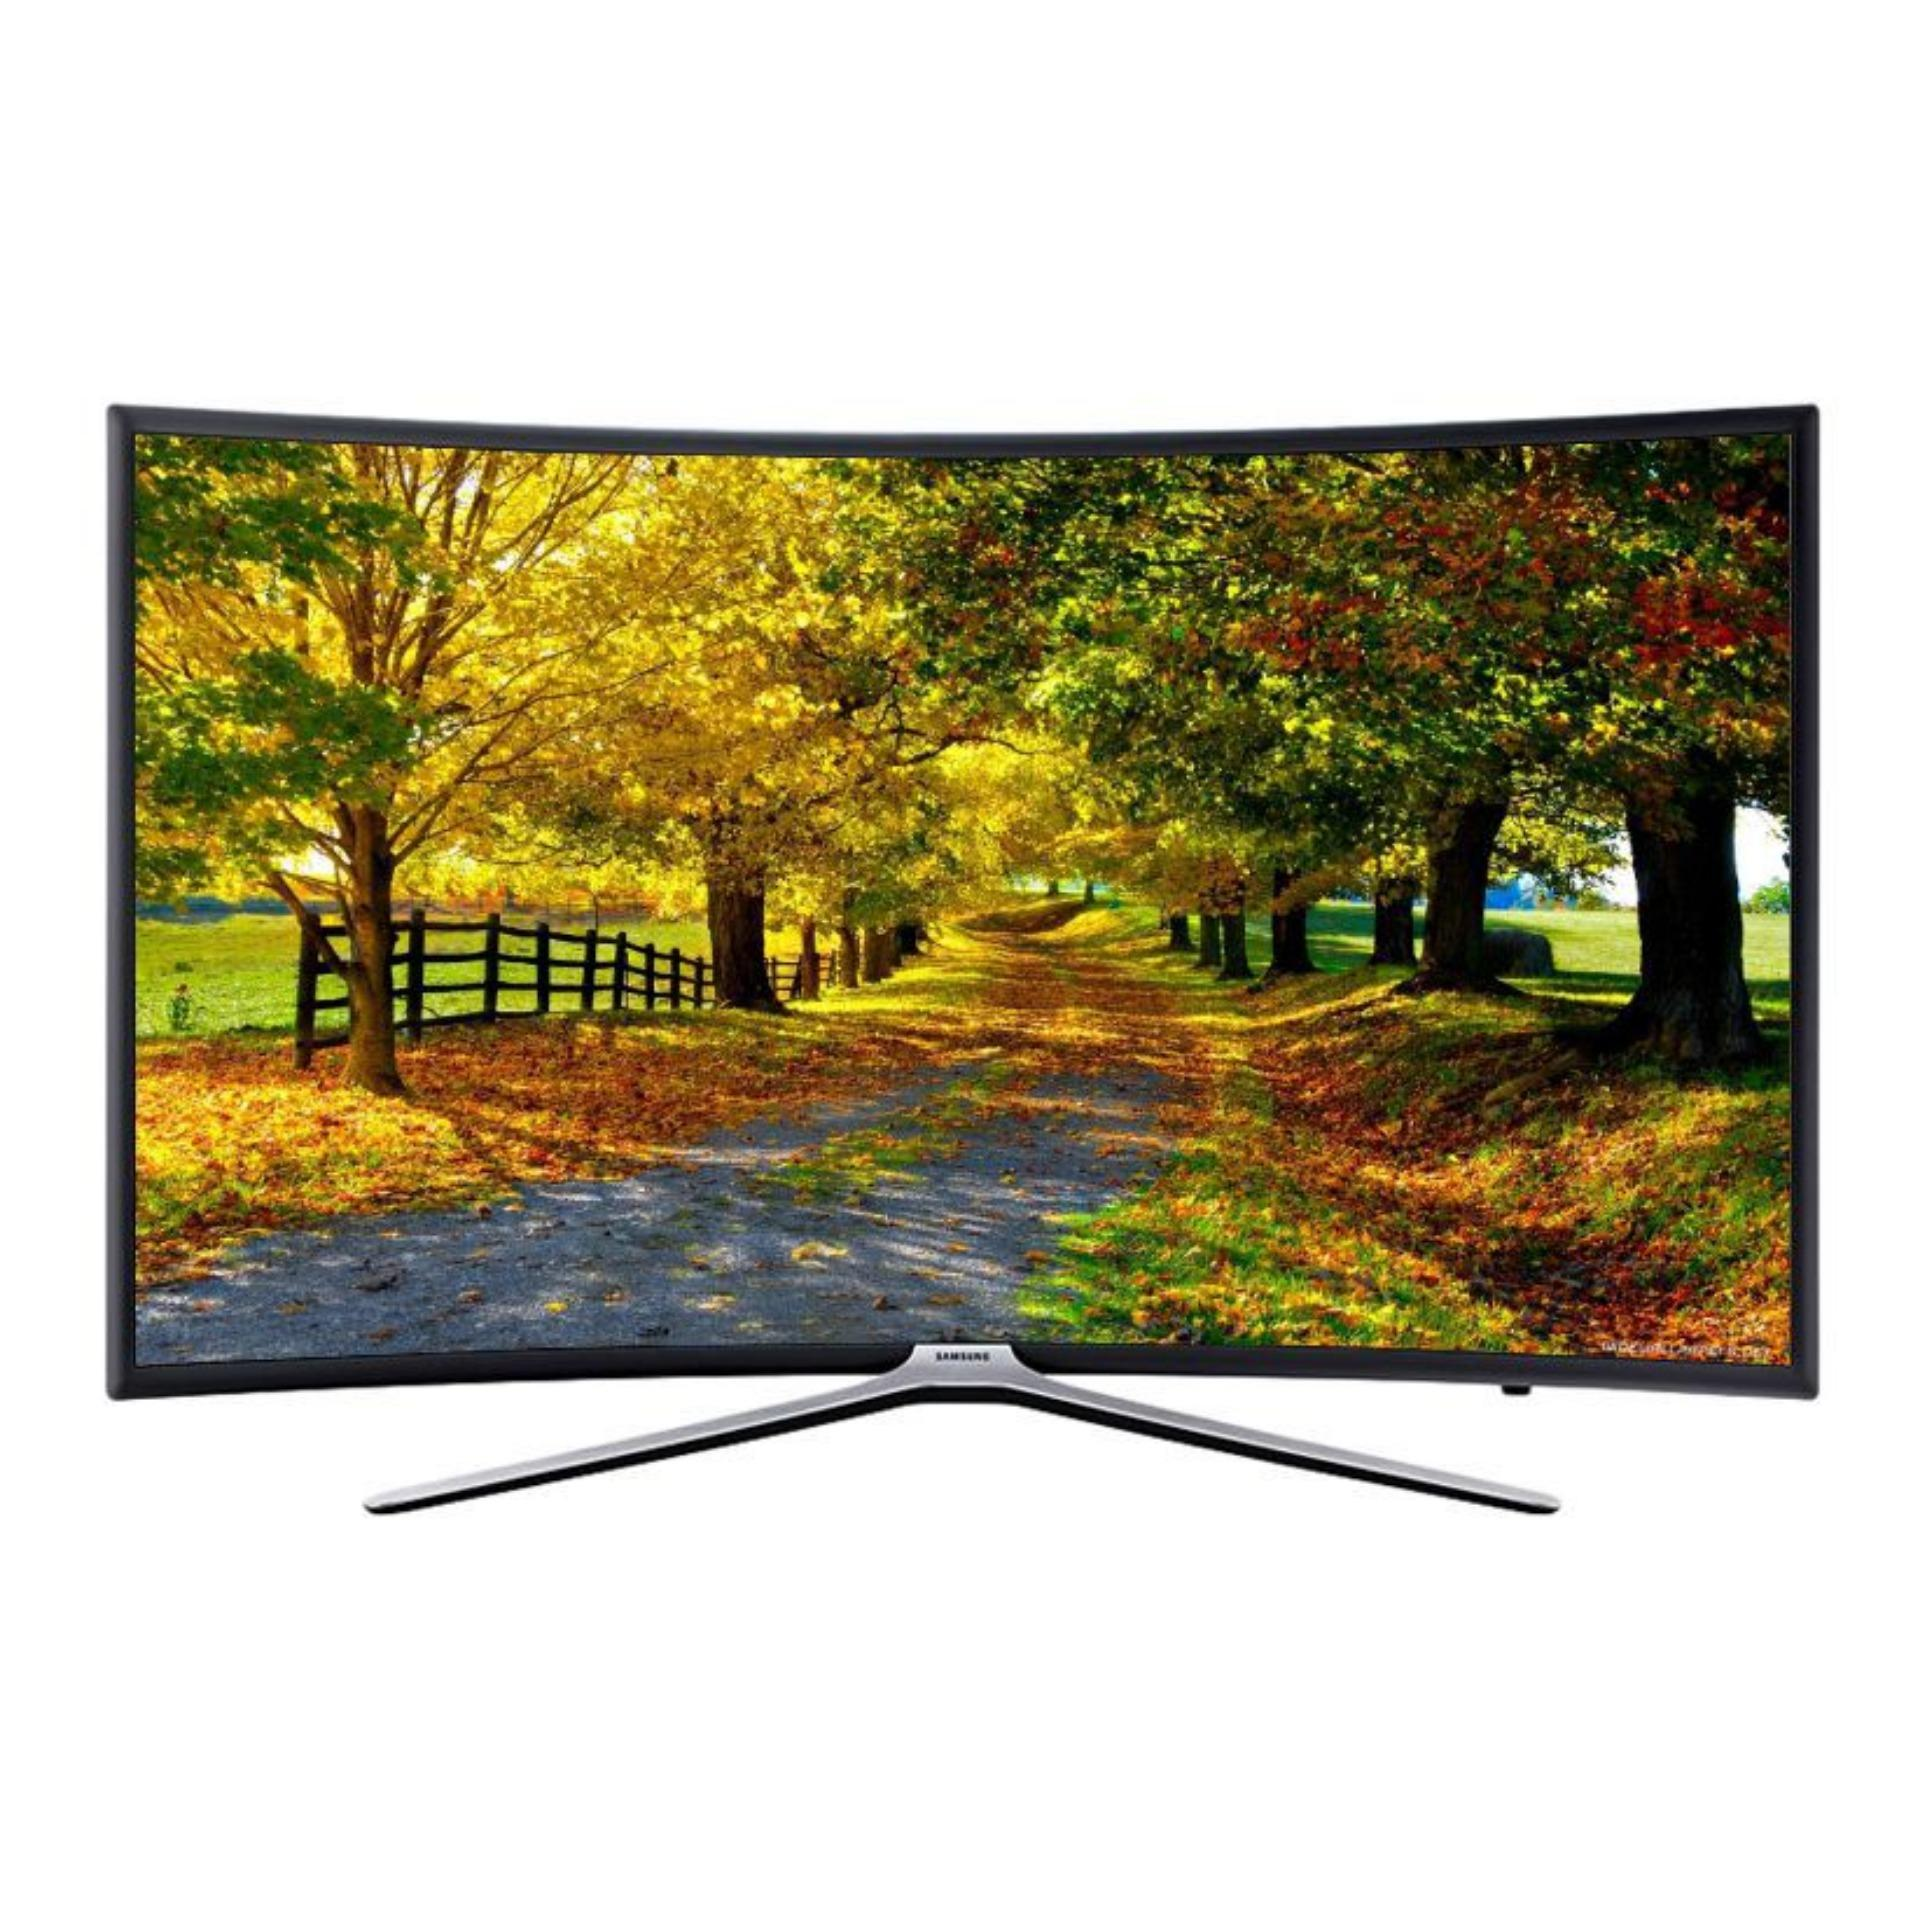 ... Samsung 49 Inch Certified UHD 4K Curved Smart LED Digital TV 49MU6300 ...